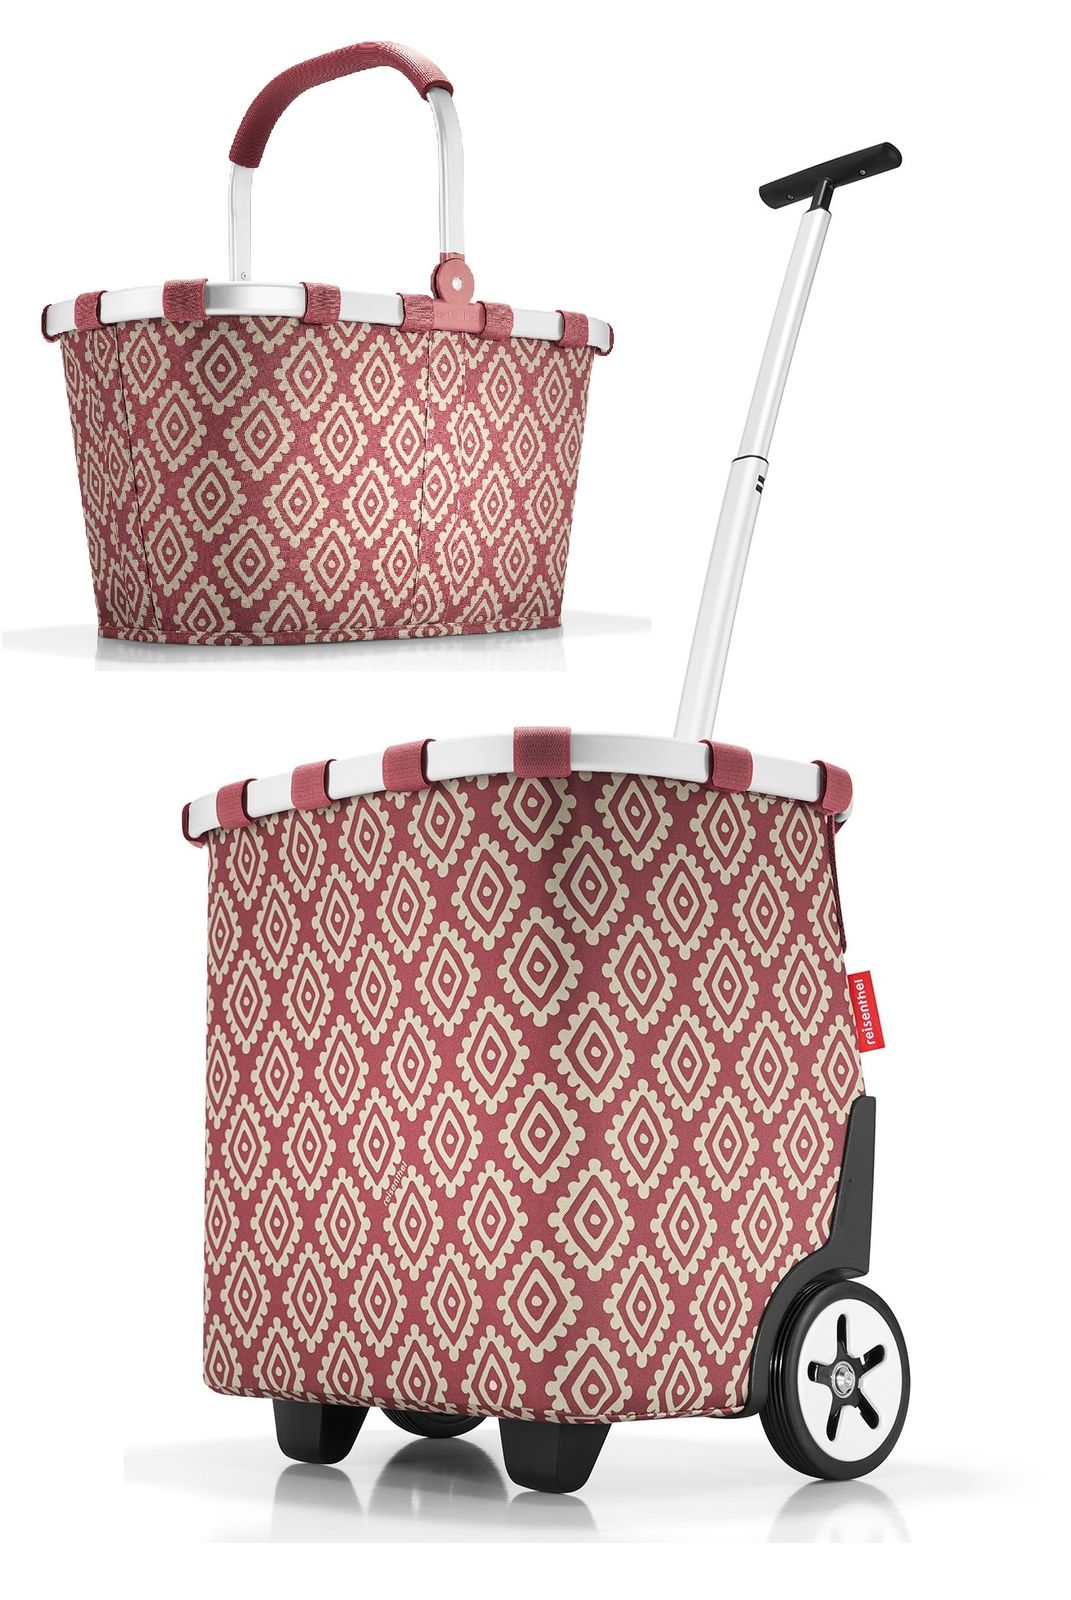 Körbe Möbel & Wohnen Reisenthel Carrycruiser Diamonds Rouge Cruiser 40 L Trolley Shopper Einkaufskorb